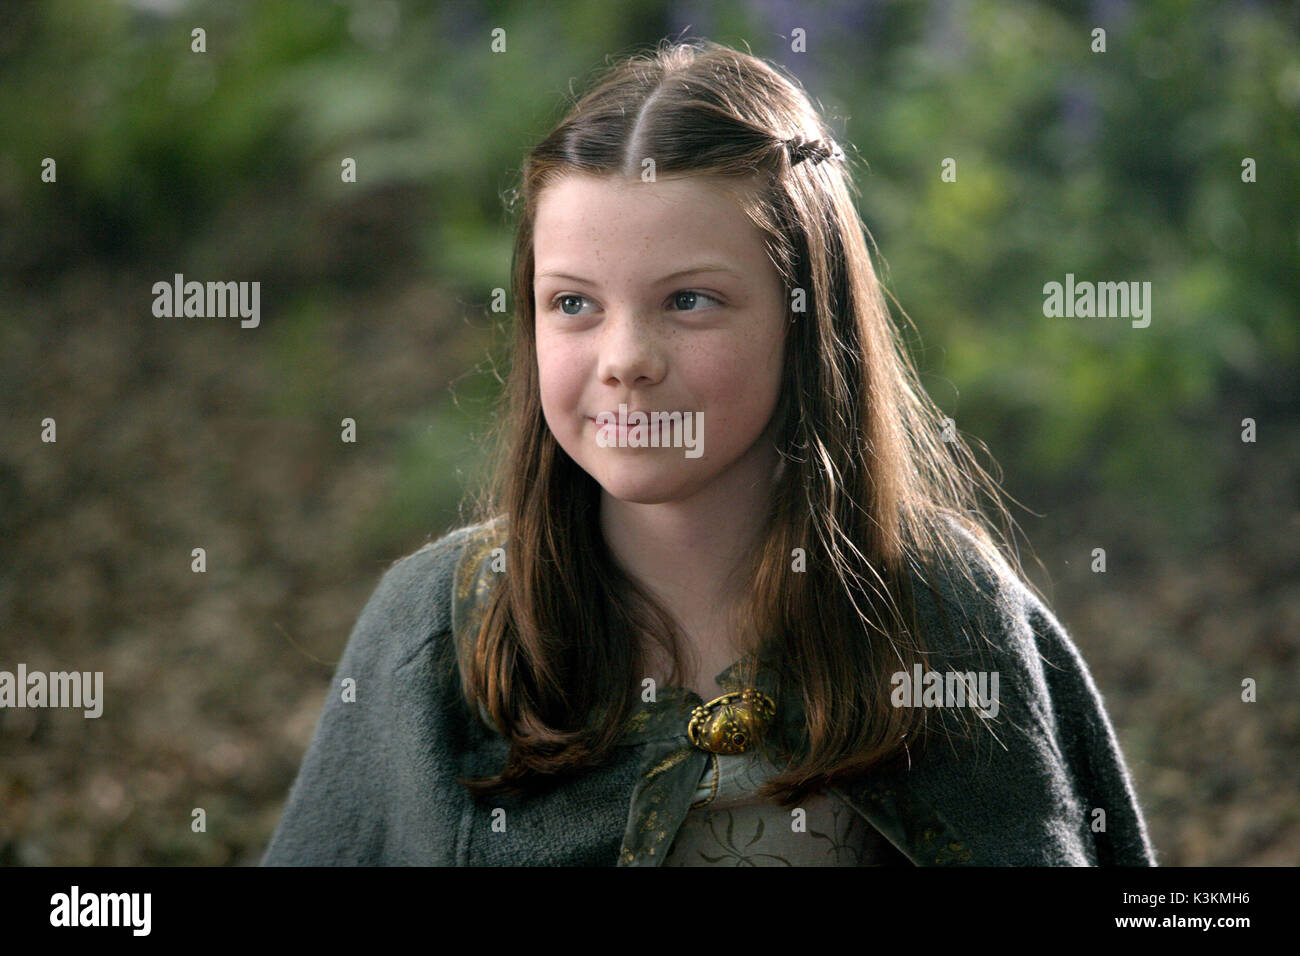 The Chronicles Of Narnia Prince Caspian Lucy Georgie Henley Stock P...